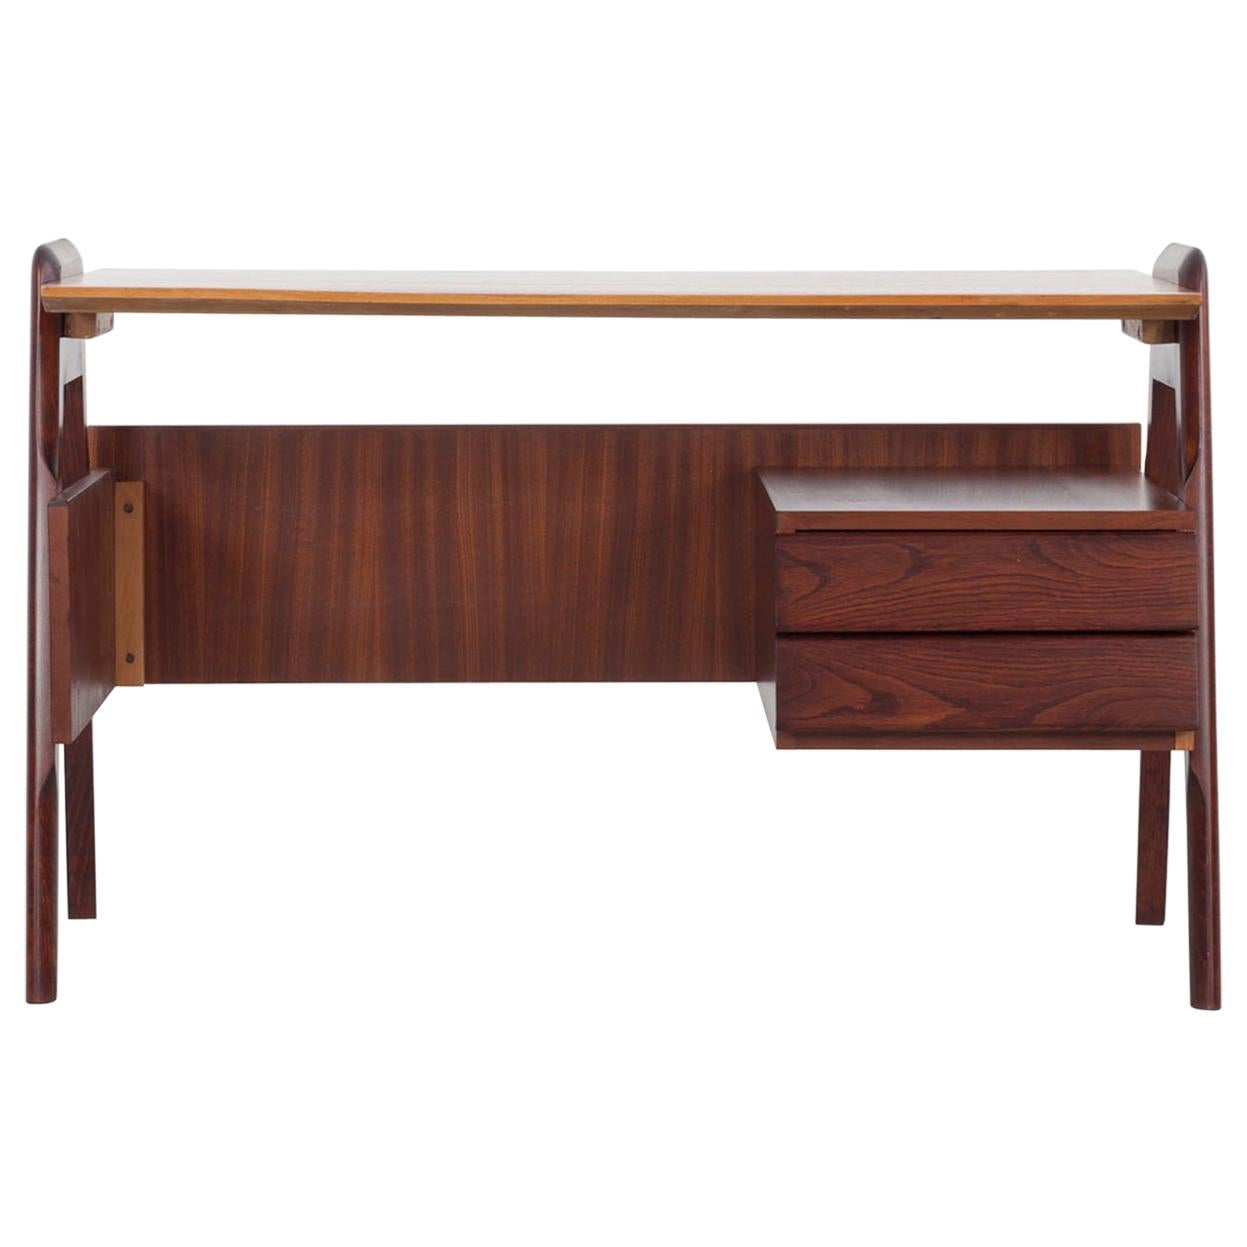 Small Italian Writing Desk with Two Drawers, 1950s